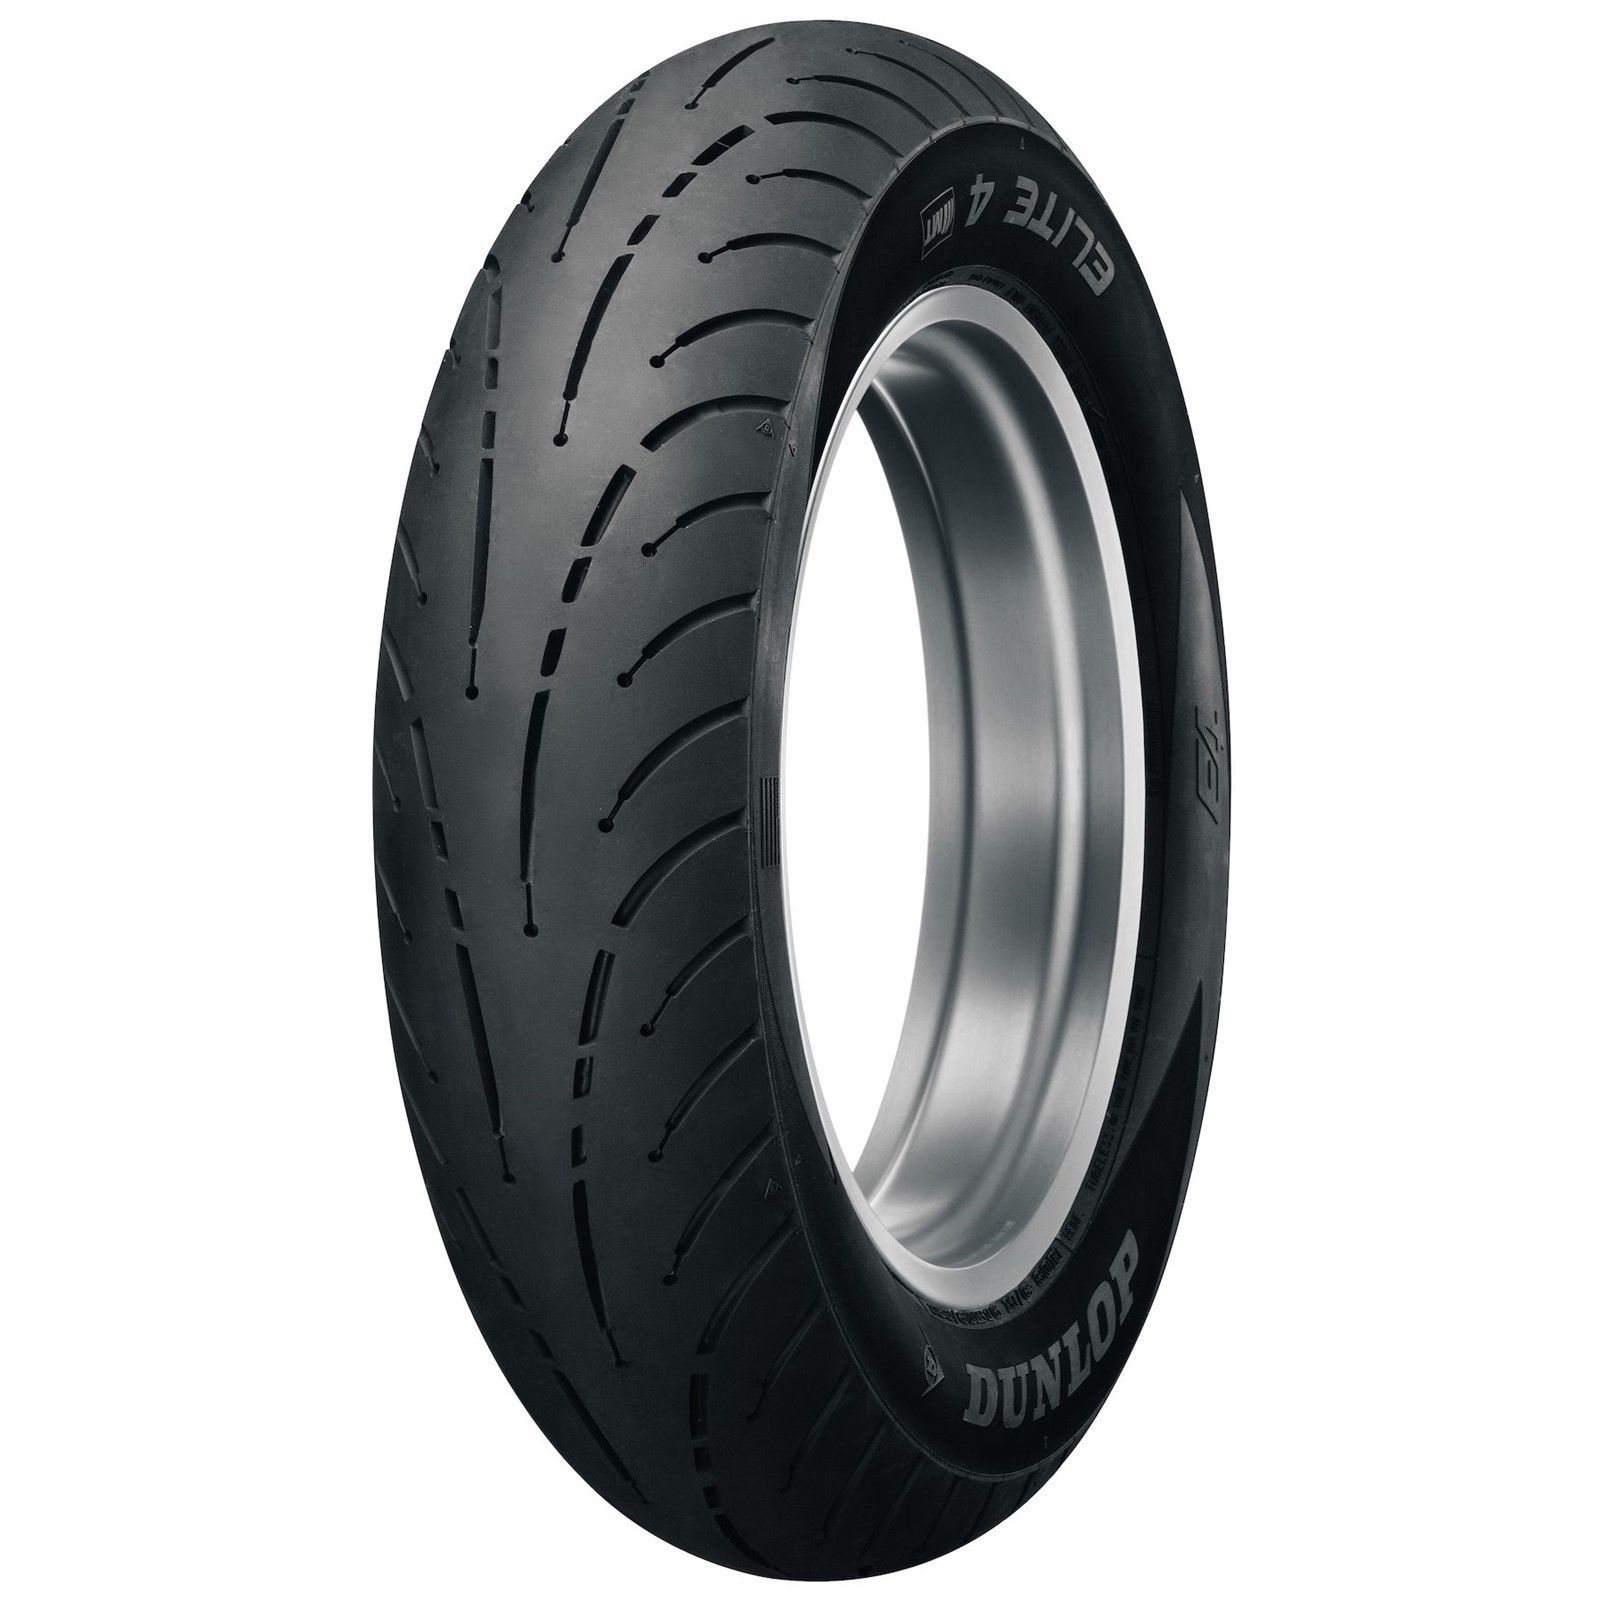 New Dunlop Elite 4 140/90-15 Bias Rear Motorcycle Tire 70H High Mileage